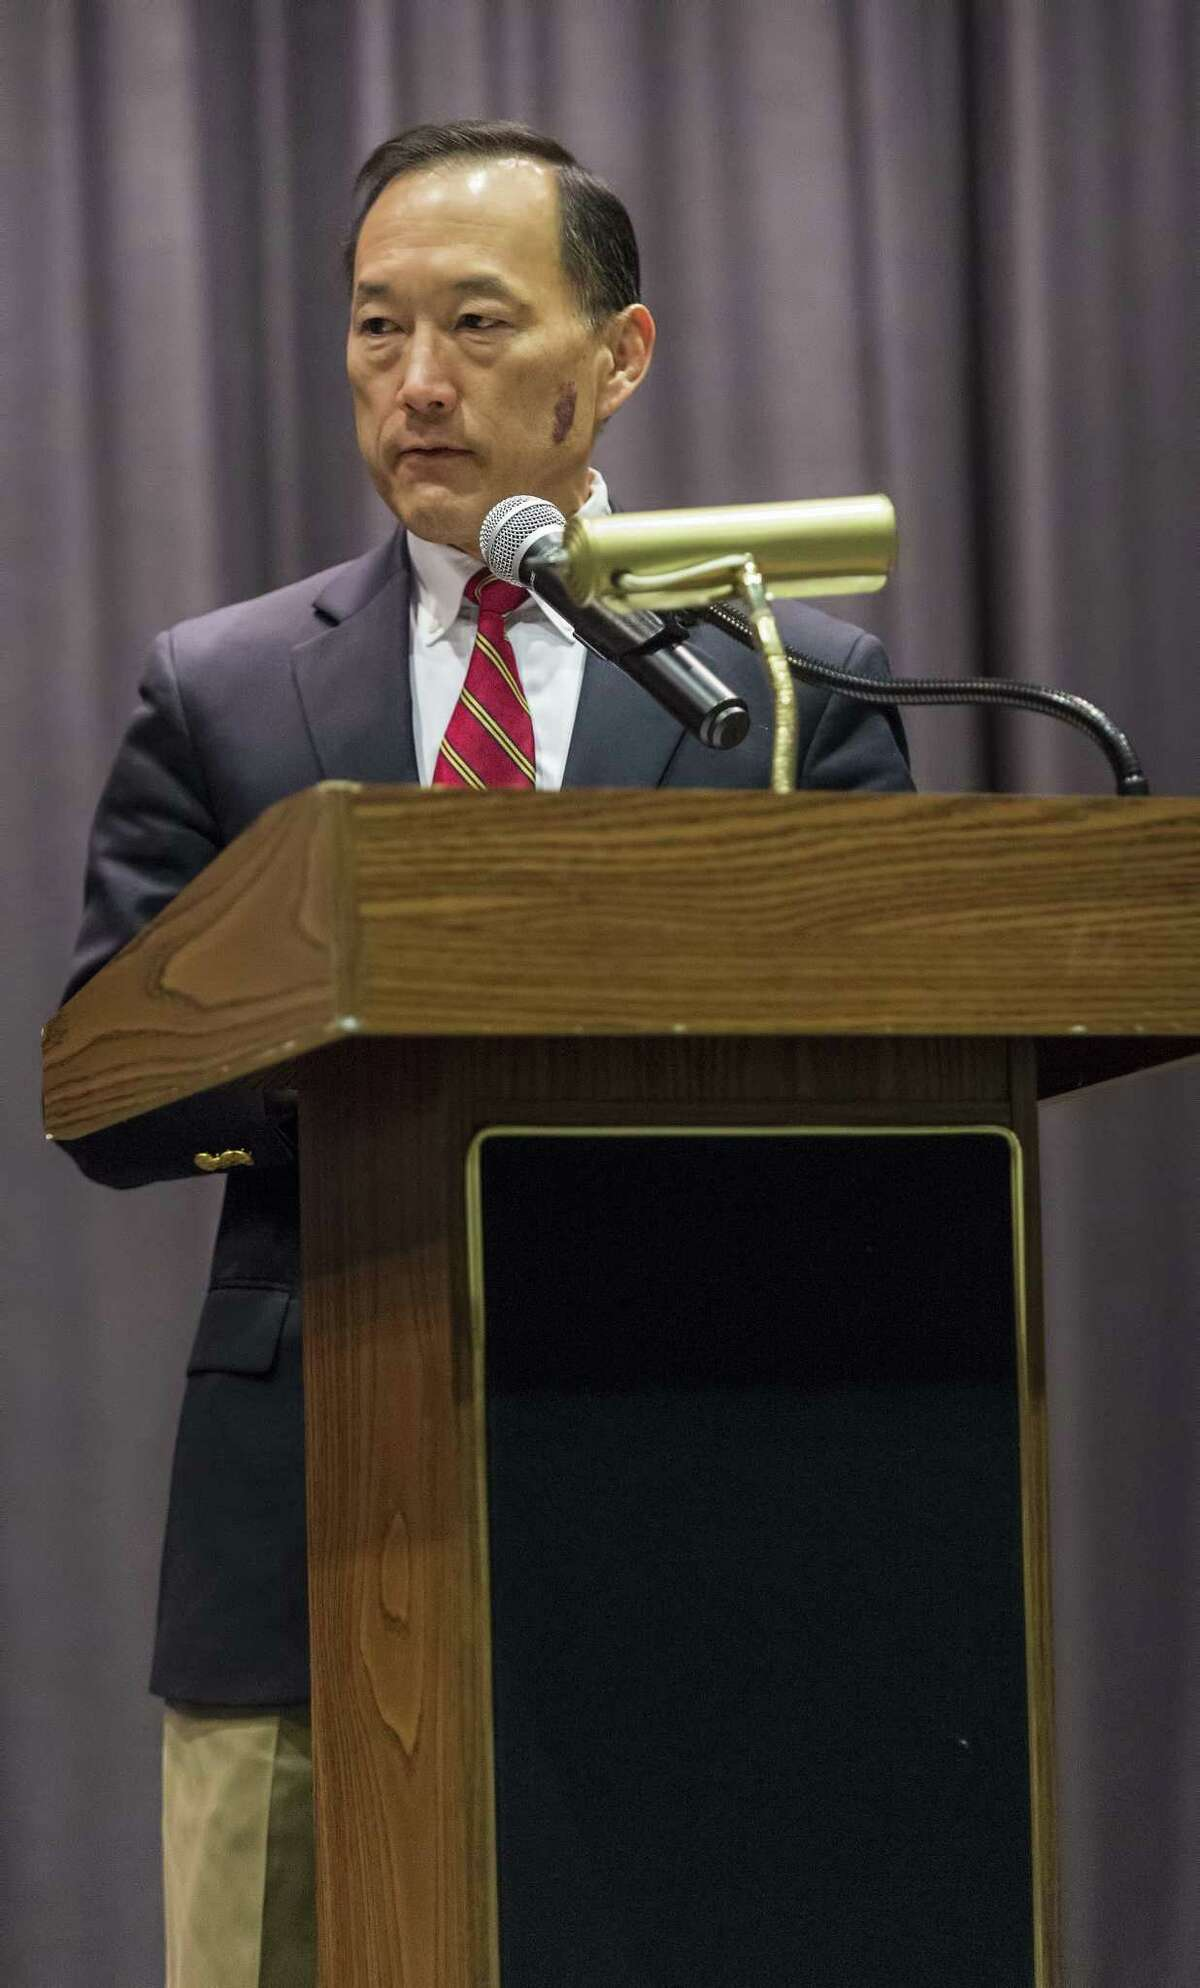 Earl Kim, Stamford superintendent of schools speaks to an audience of Academy of Information Technology & Engineeringstudents during a walkout to honor the victims of the Parkland school shooting last month. The students walked over to the Rippowam Middle School audiorium where several student spoke to their classmates and teachers. Stamford, CT, Wednesday, March 14, 2018.